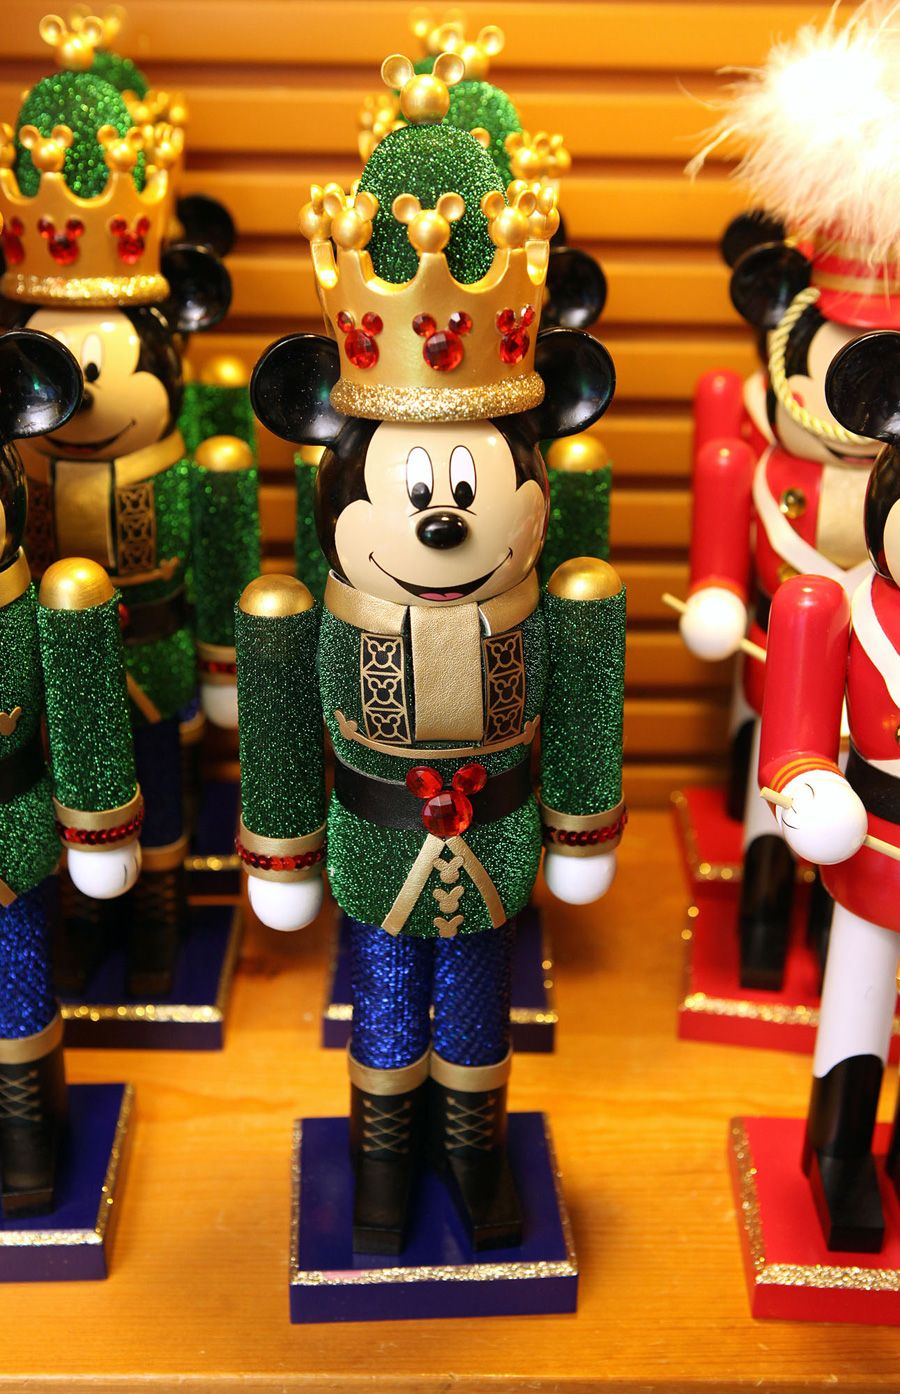 Make Festive Mickey Mouse Nutcrackers Part of Your Holiday ...